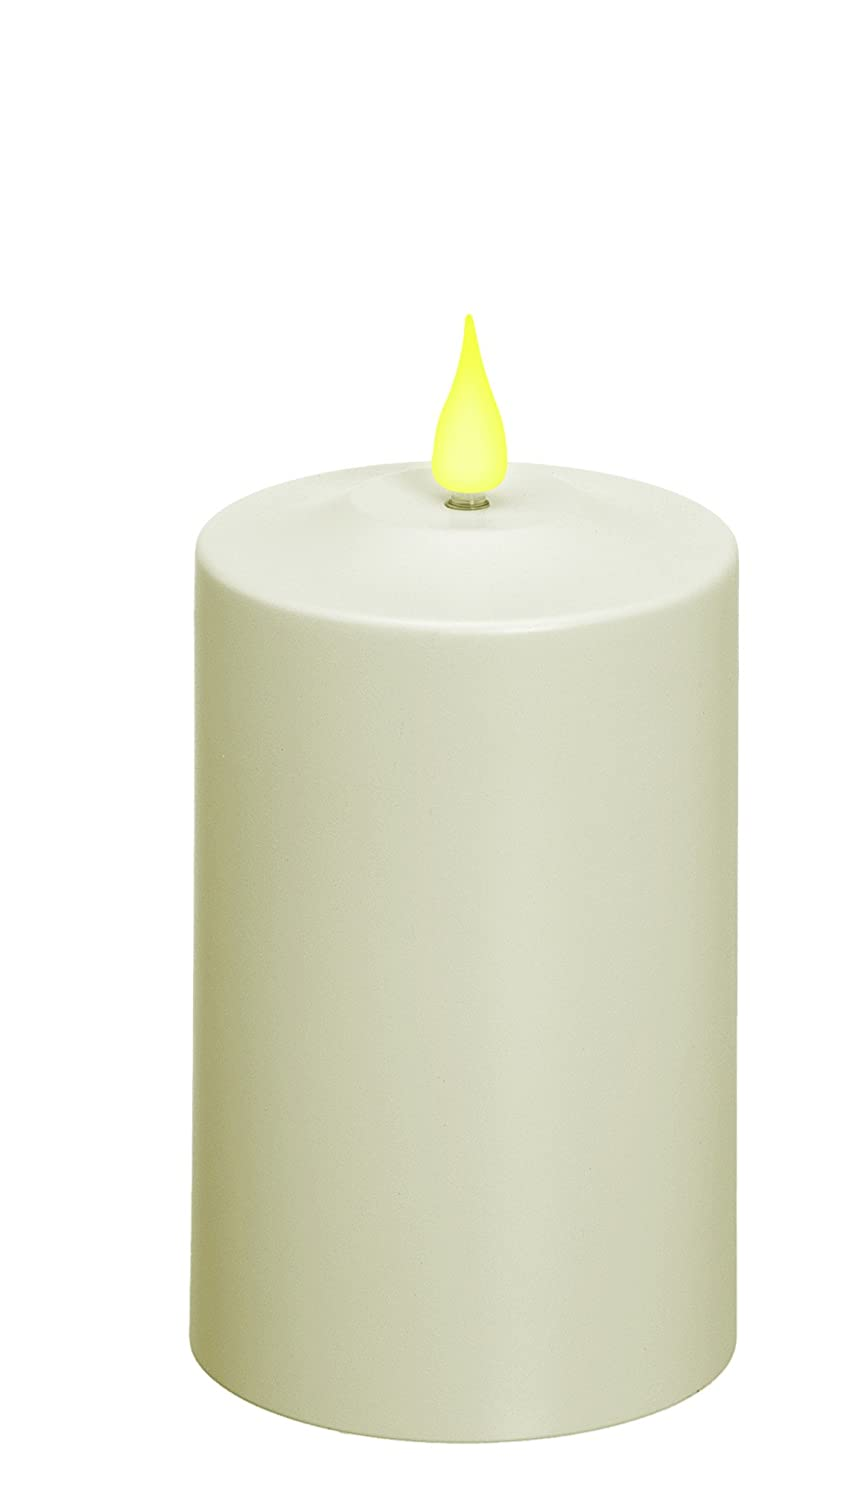 Xodus Innovations FPC1485 Weatherproof Flameless Indoor/Outdoor 5-Inch Battery Powered Pillar Candle with Flicker and Constant on Modes Carlon, Thomas and Betts